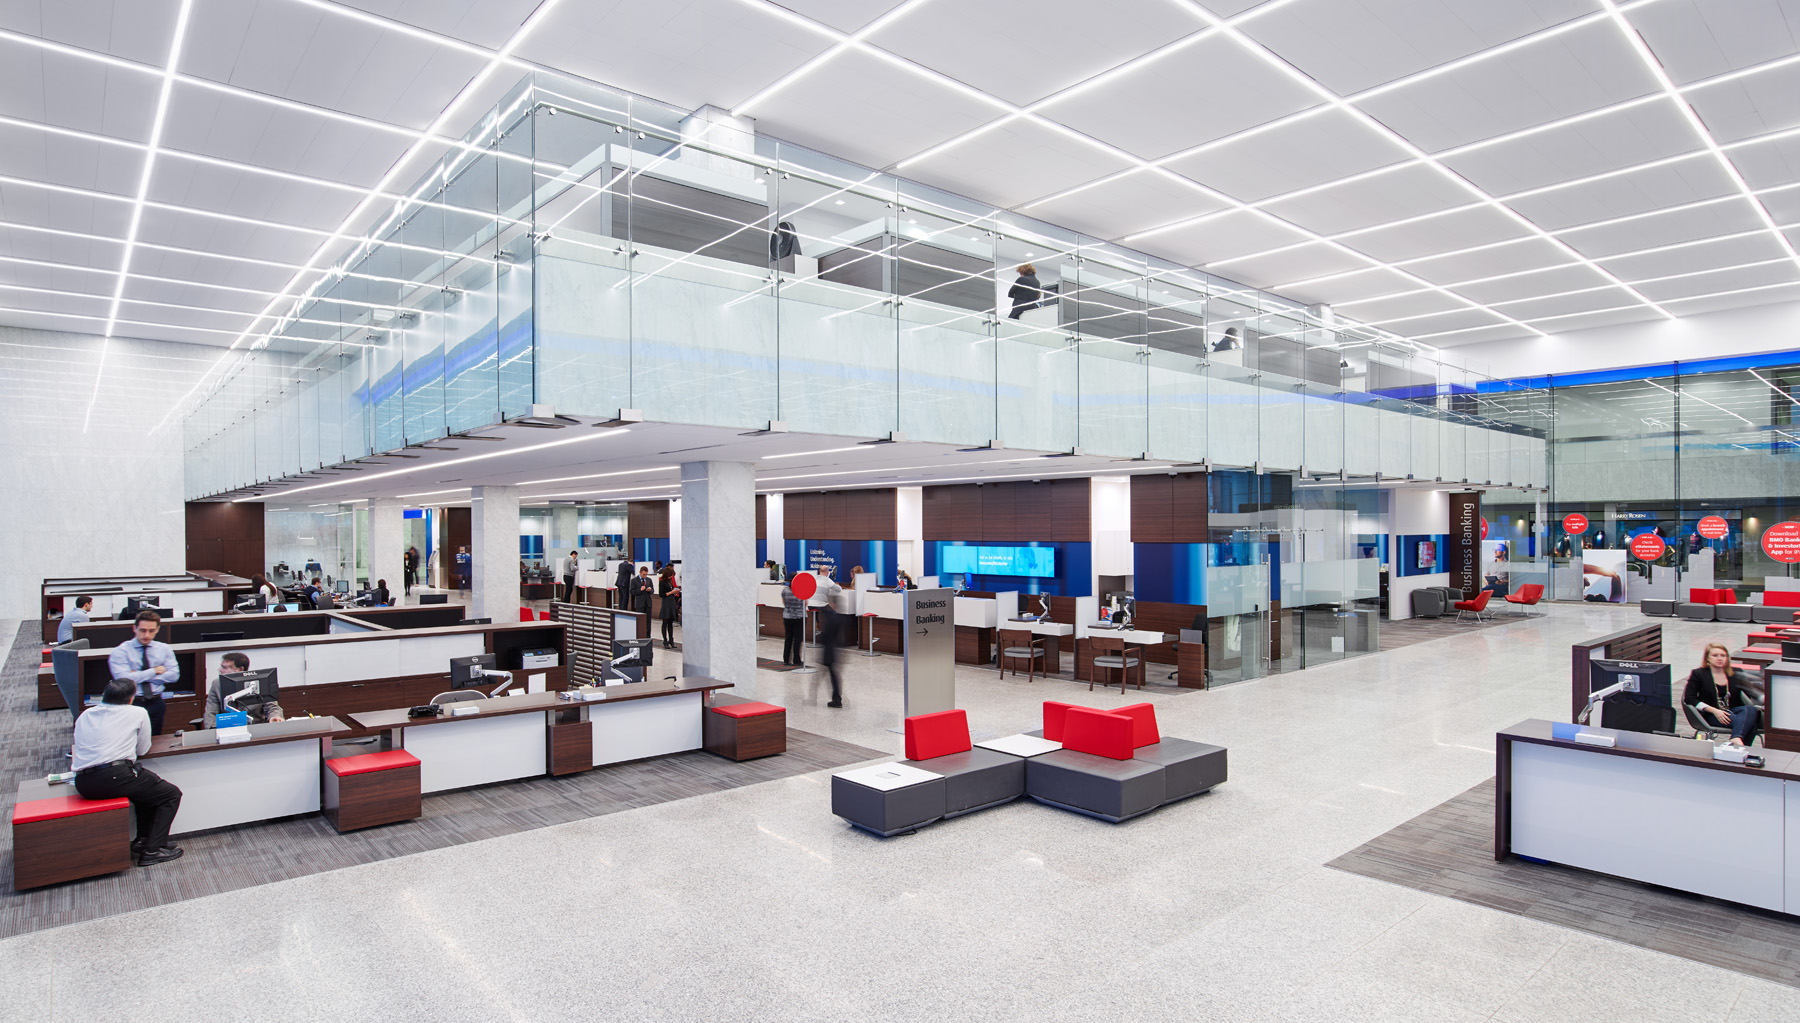 BMO interior with workstations, upholstered seating, and second floor with glass walls